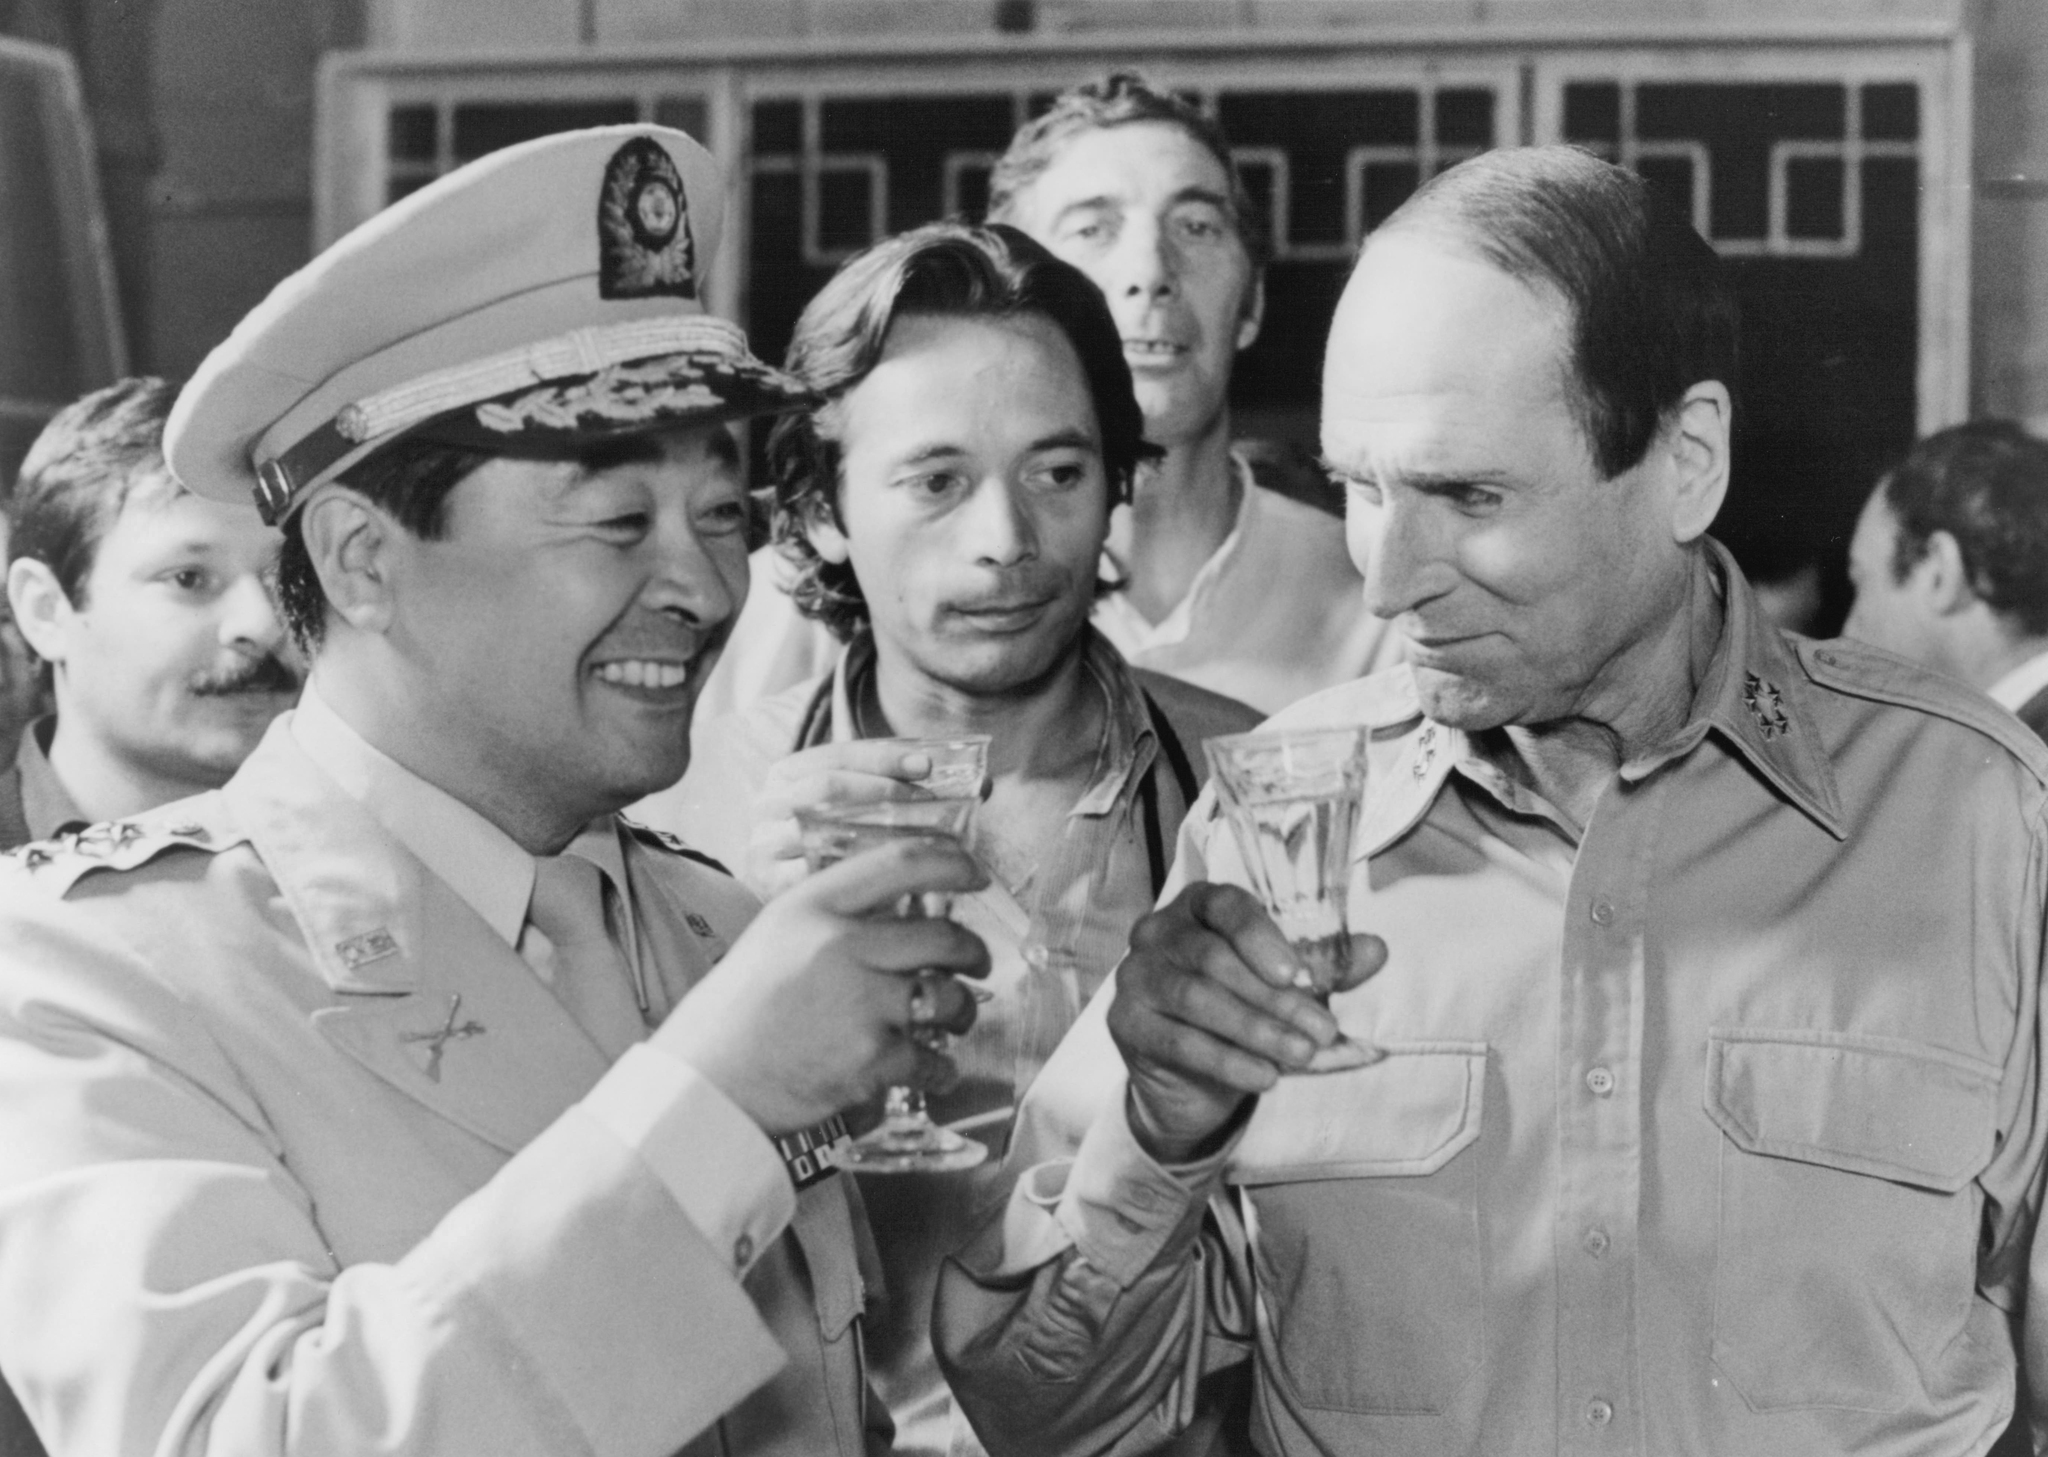 Laurence Olivier and Kung-won Nam in Inchon (1981)